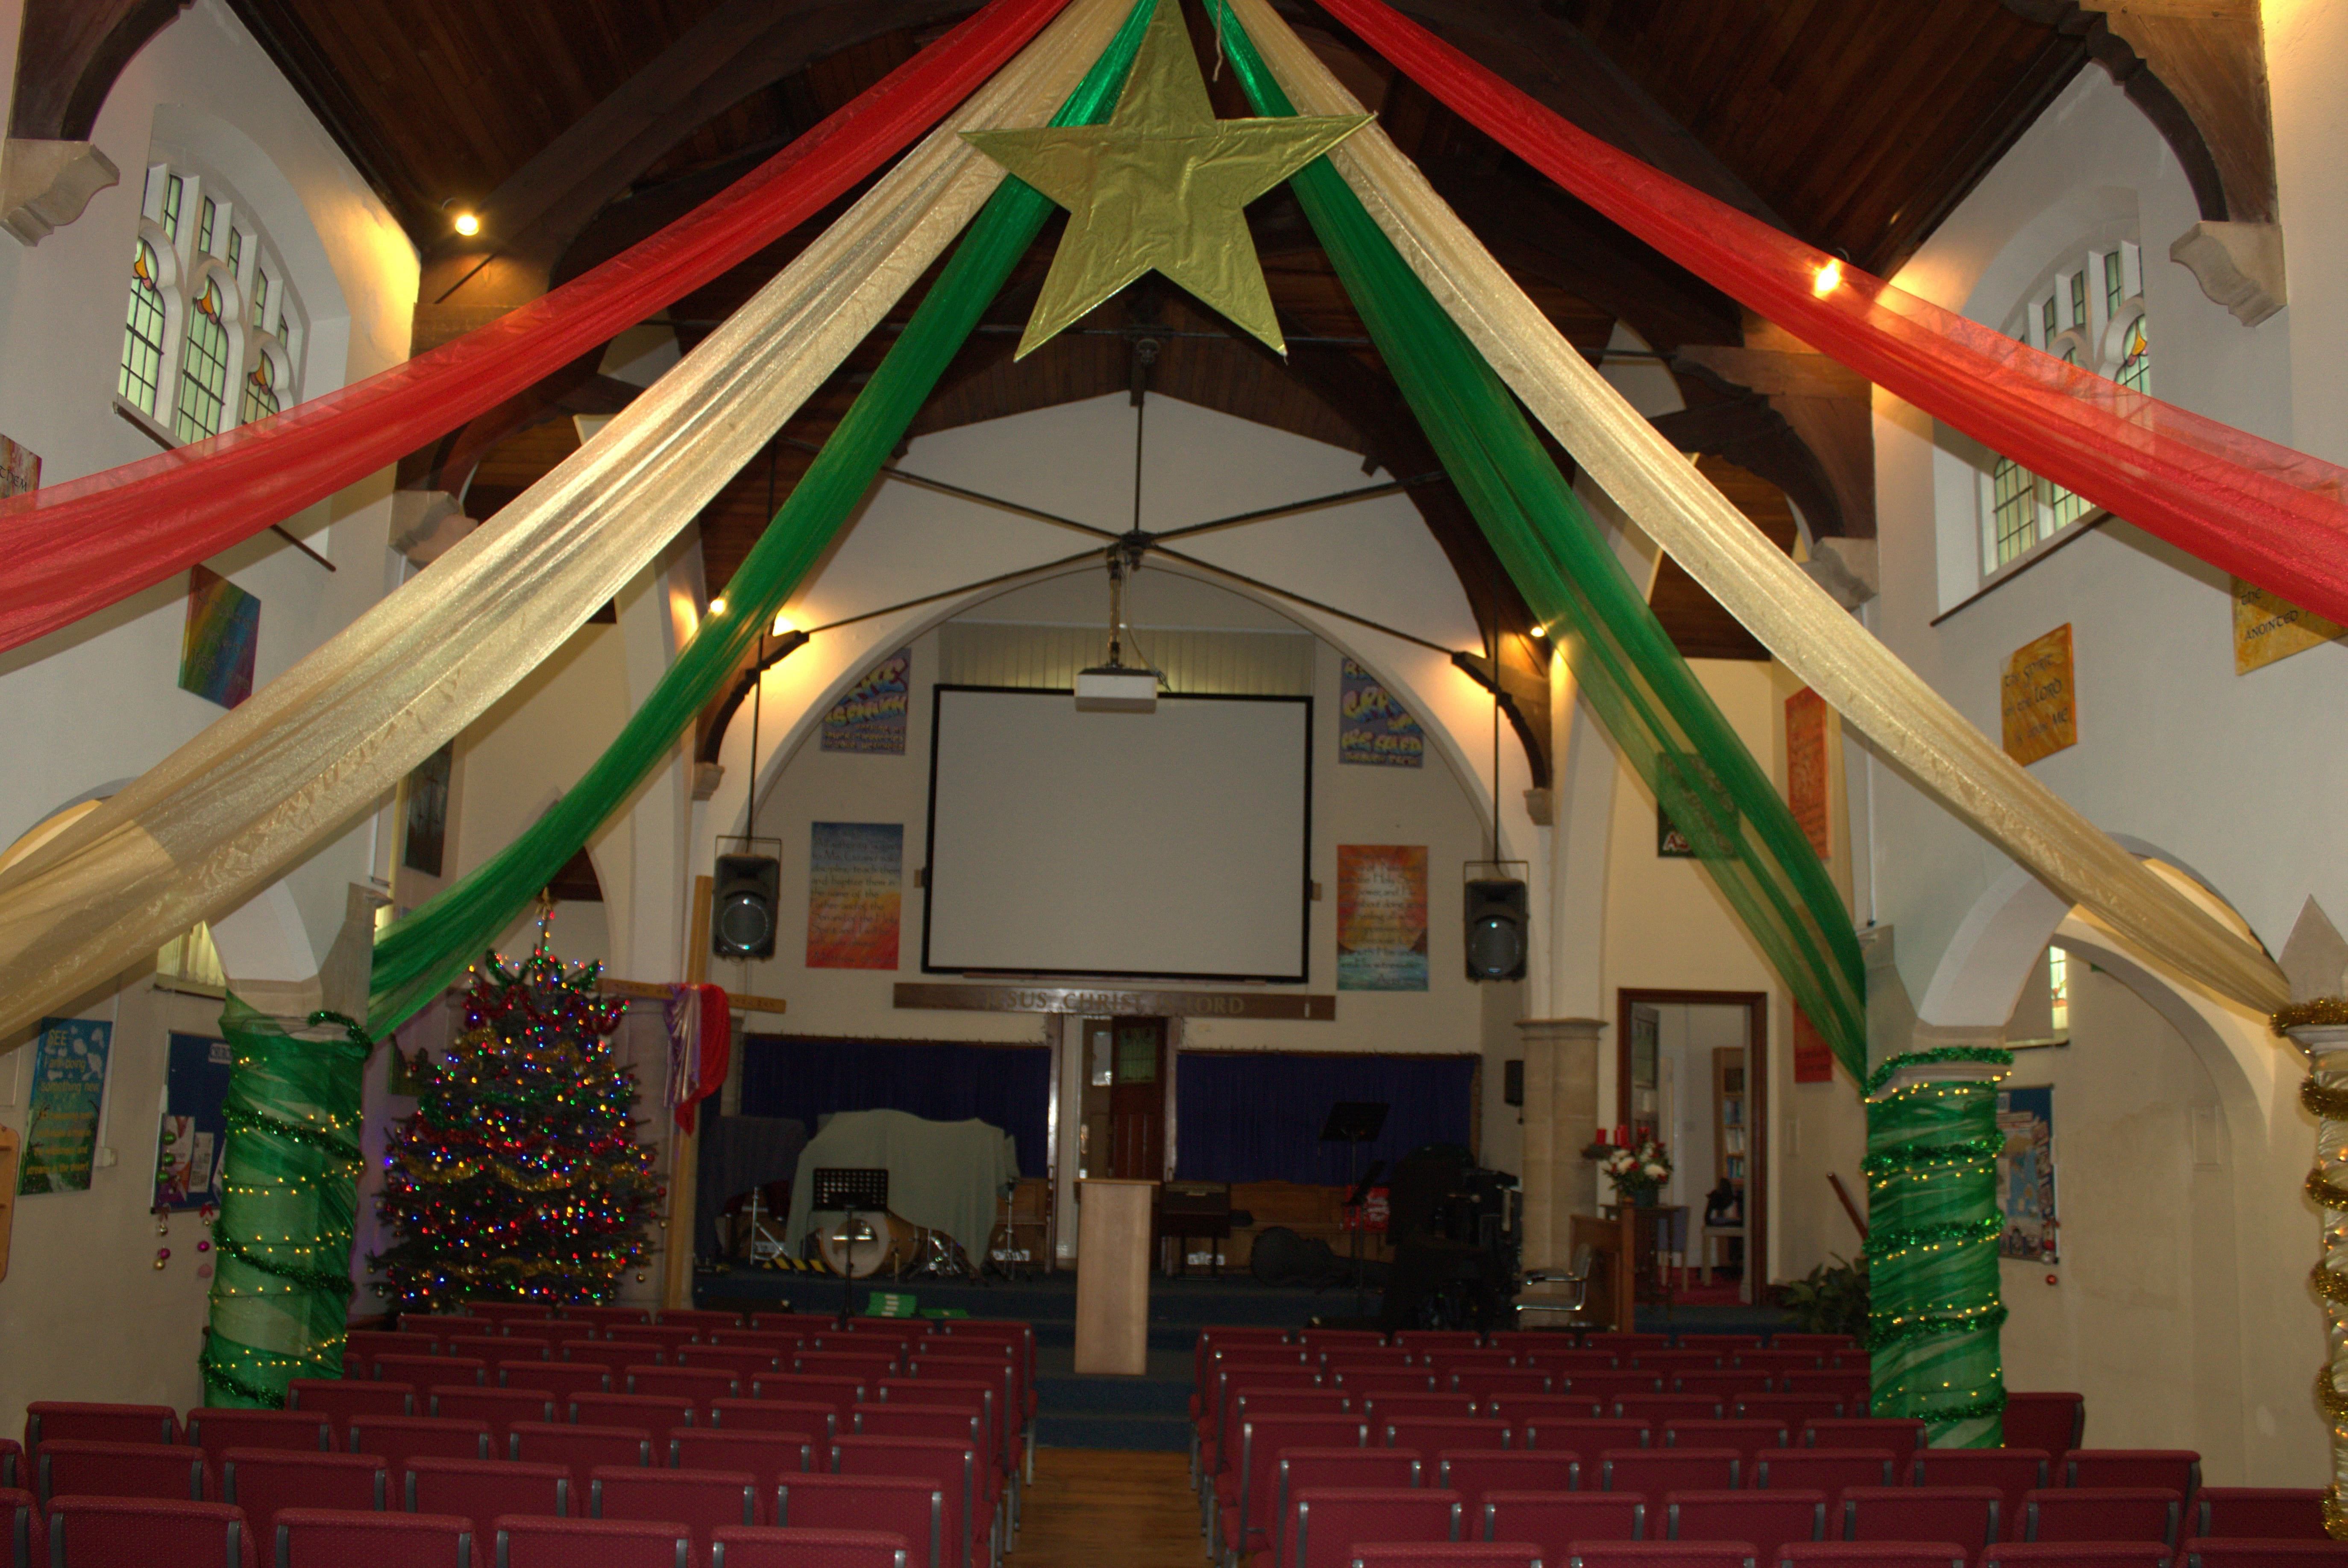 Our Church with Christmas decorations up